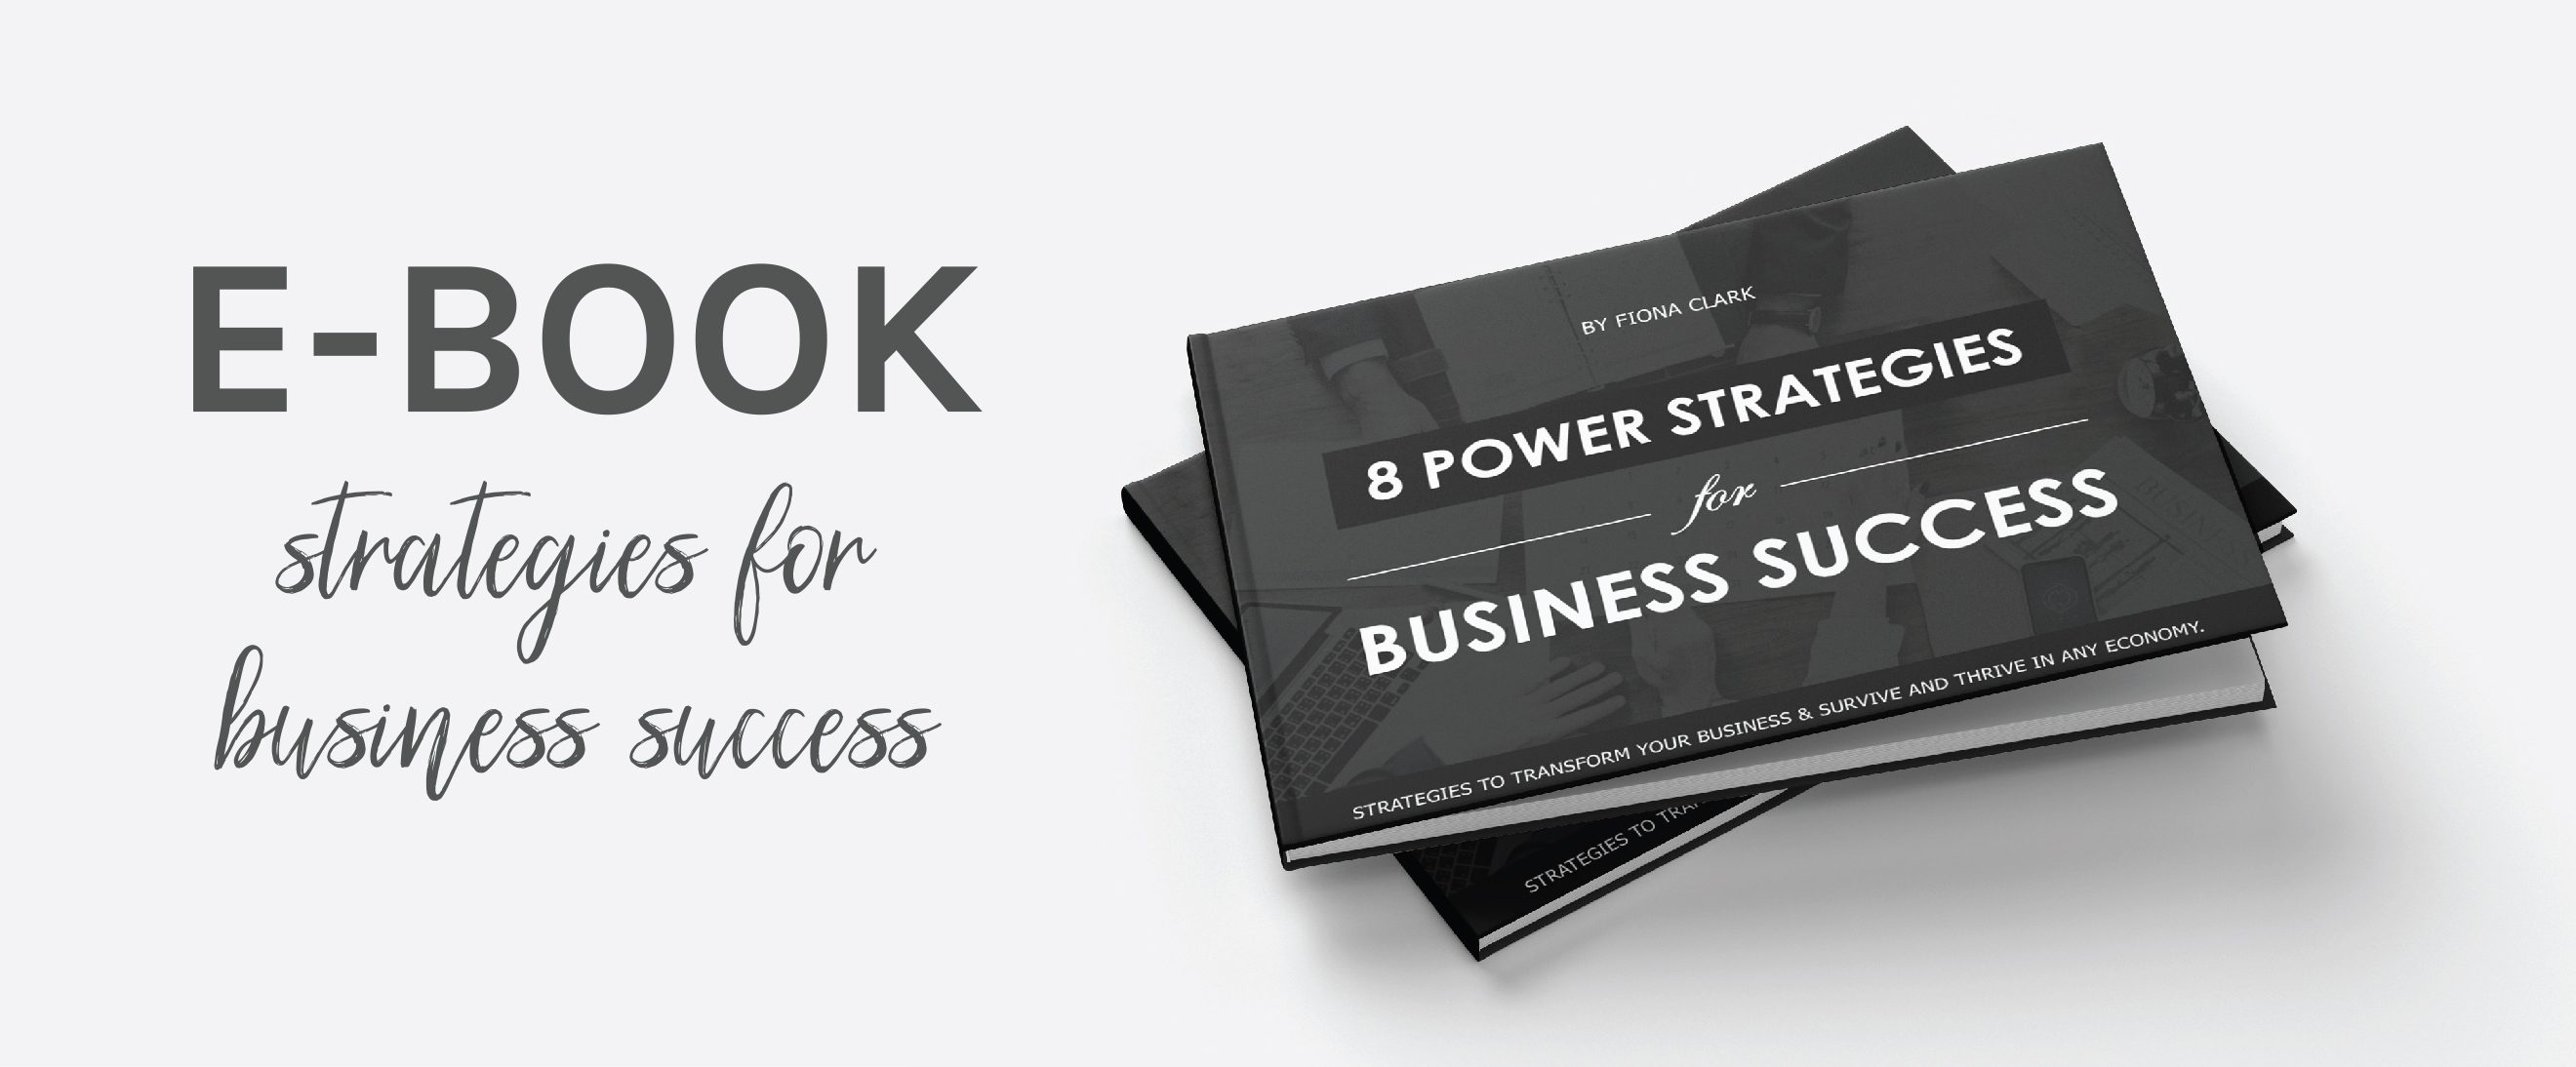 Ebook - 8 power strategies for business success